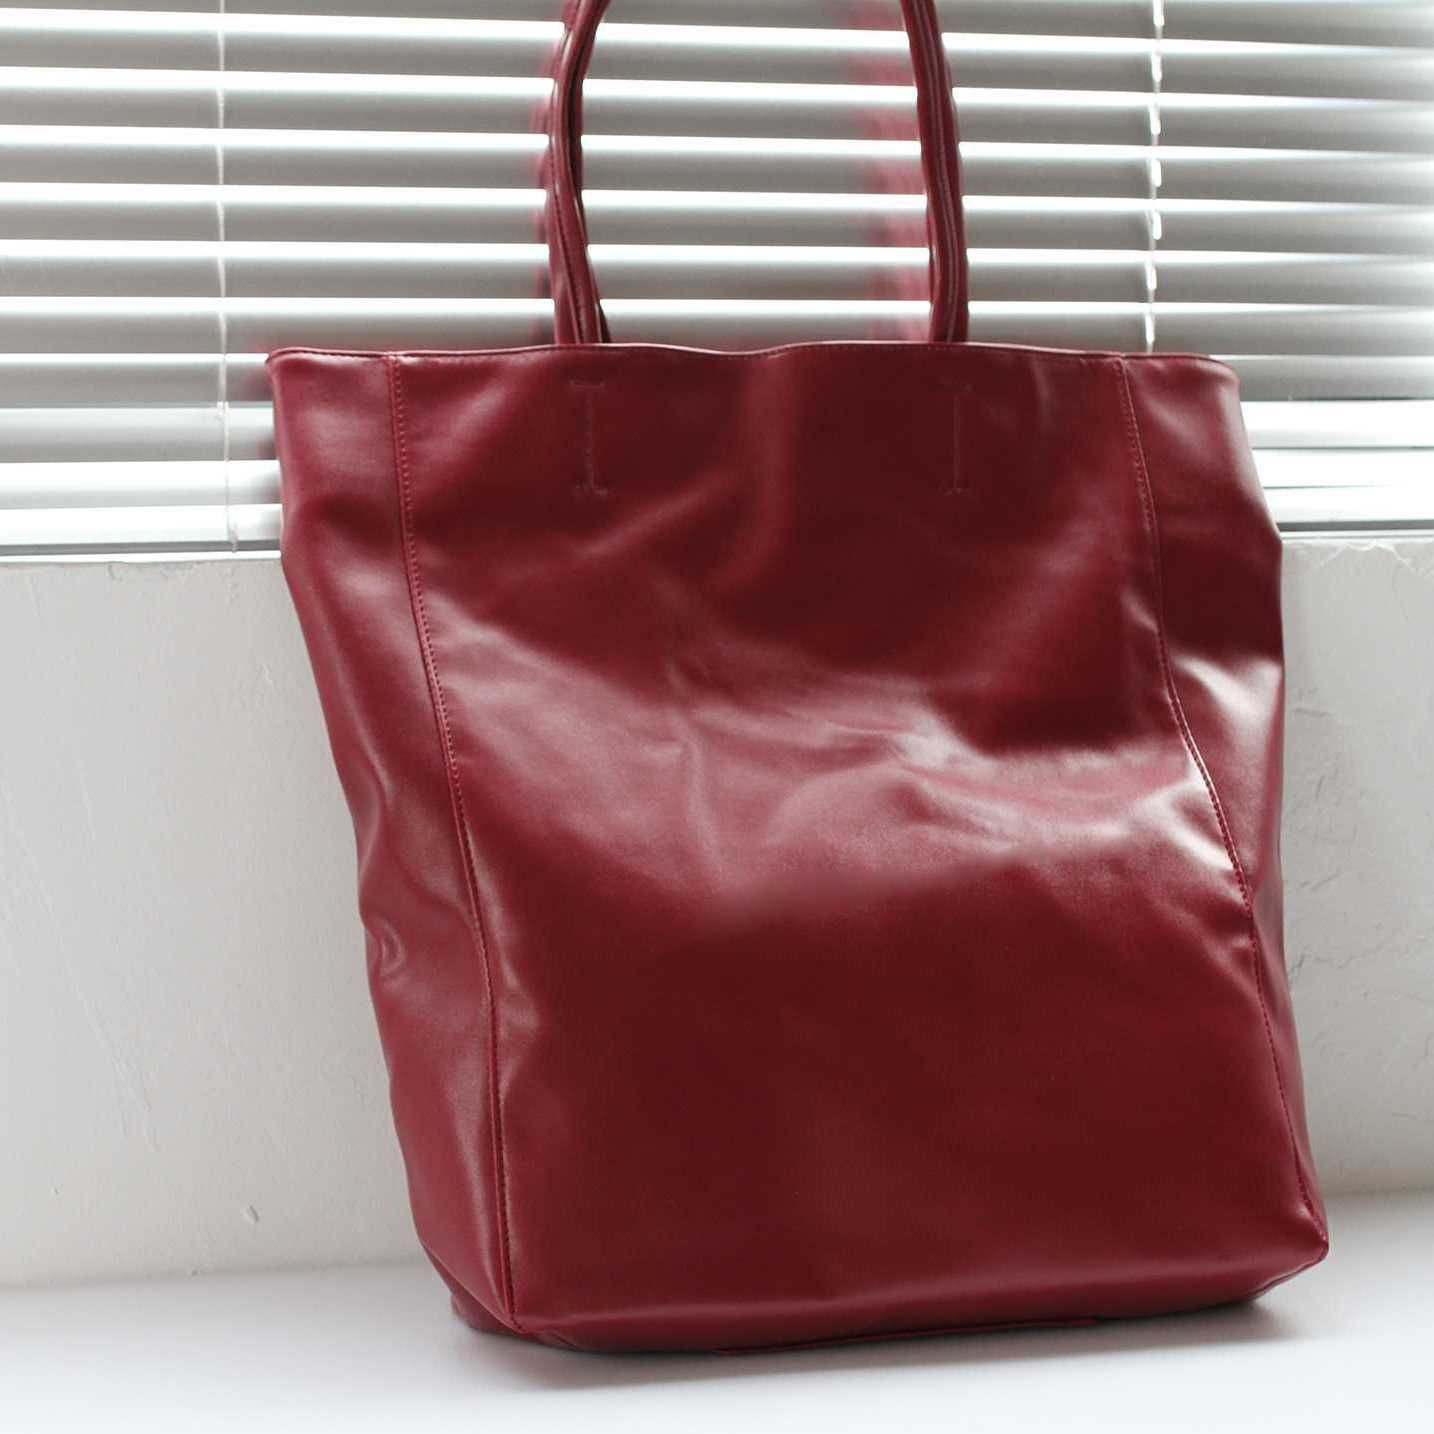 7c215d458aa2 chic bags and totes for college tote bags for work laptop totes bag faux  leather work bag burgundy tote bag. Save.extra 20% OFF on  45+ by code  SUMMER20%OFF ...